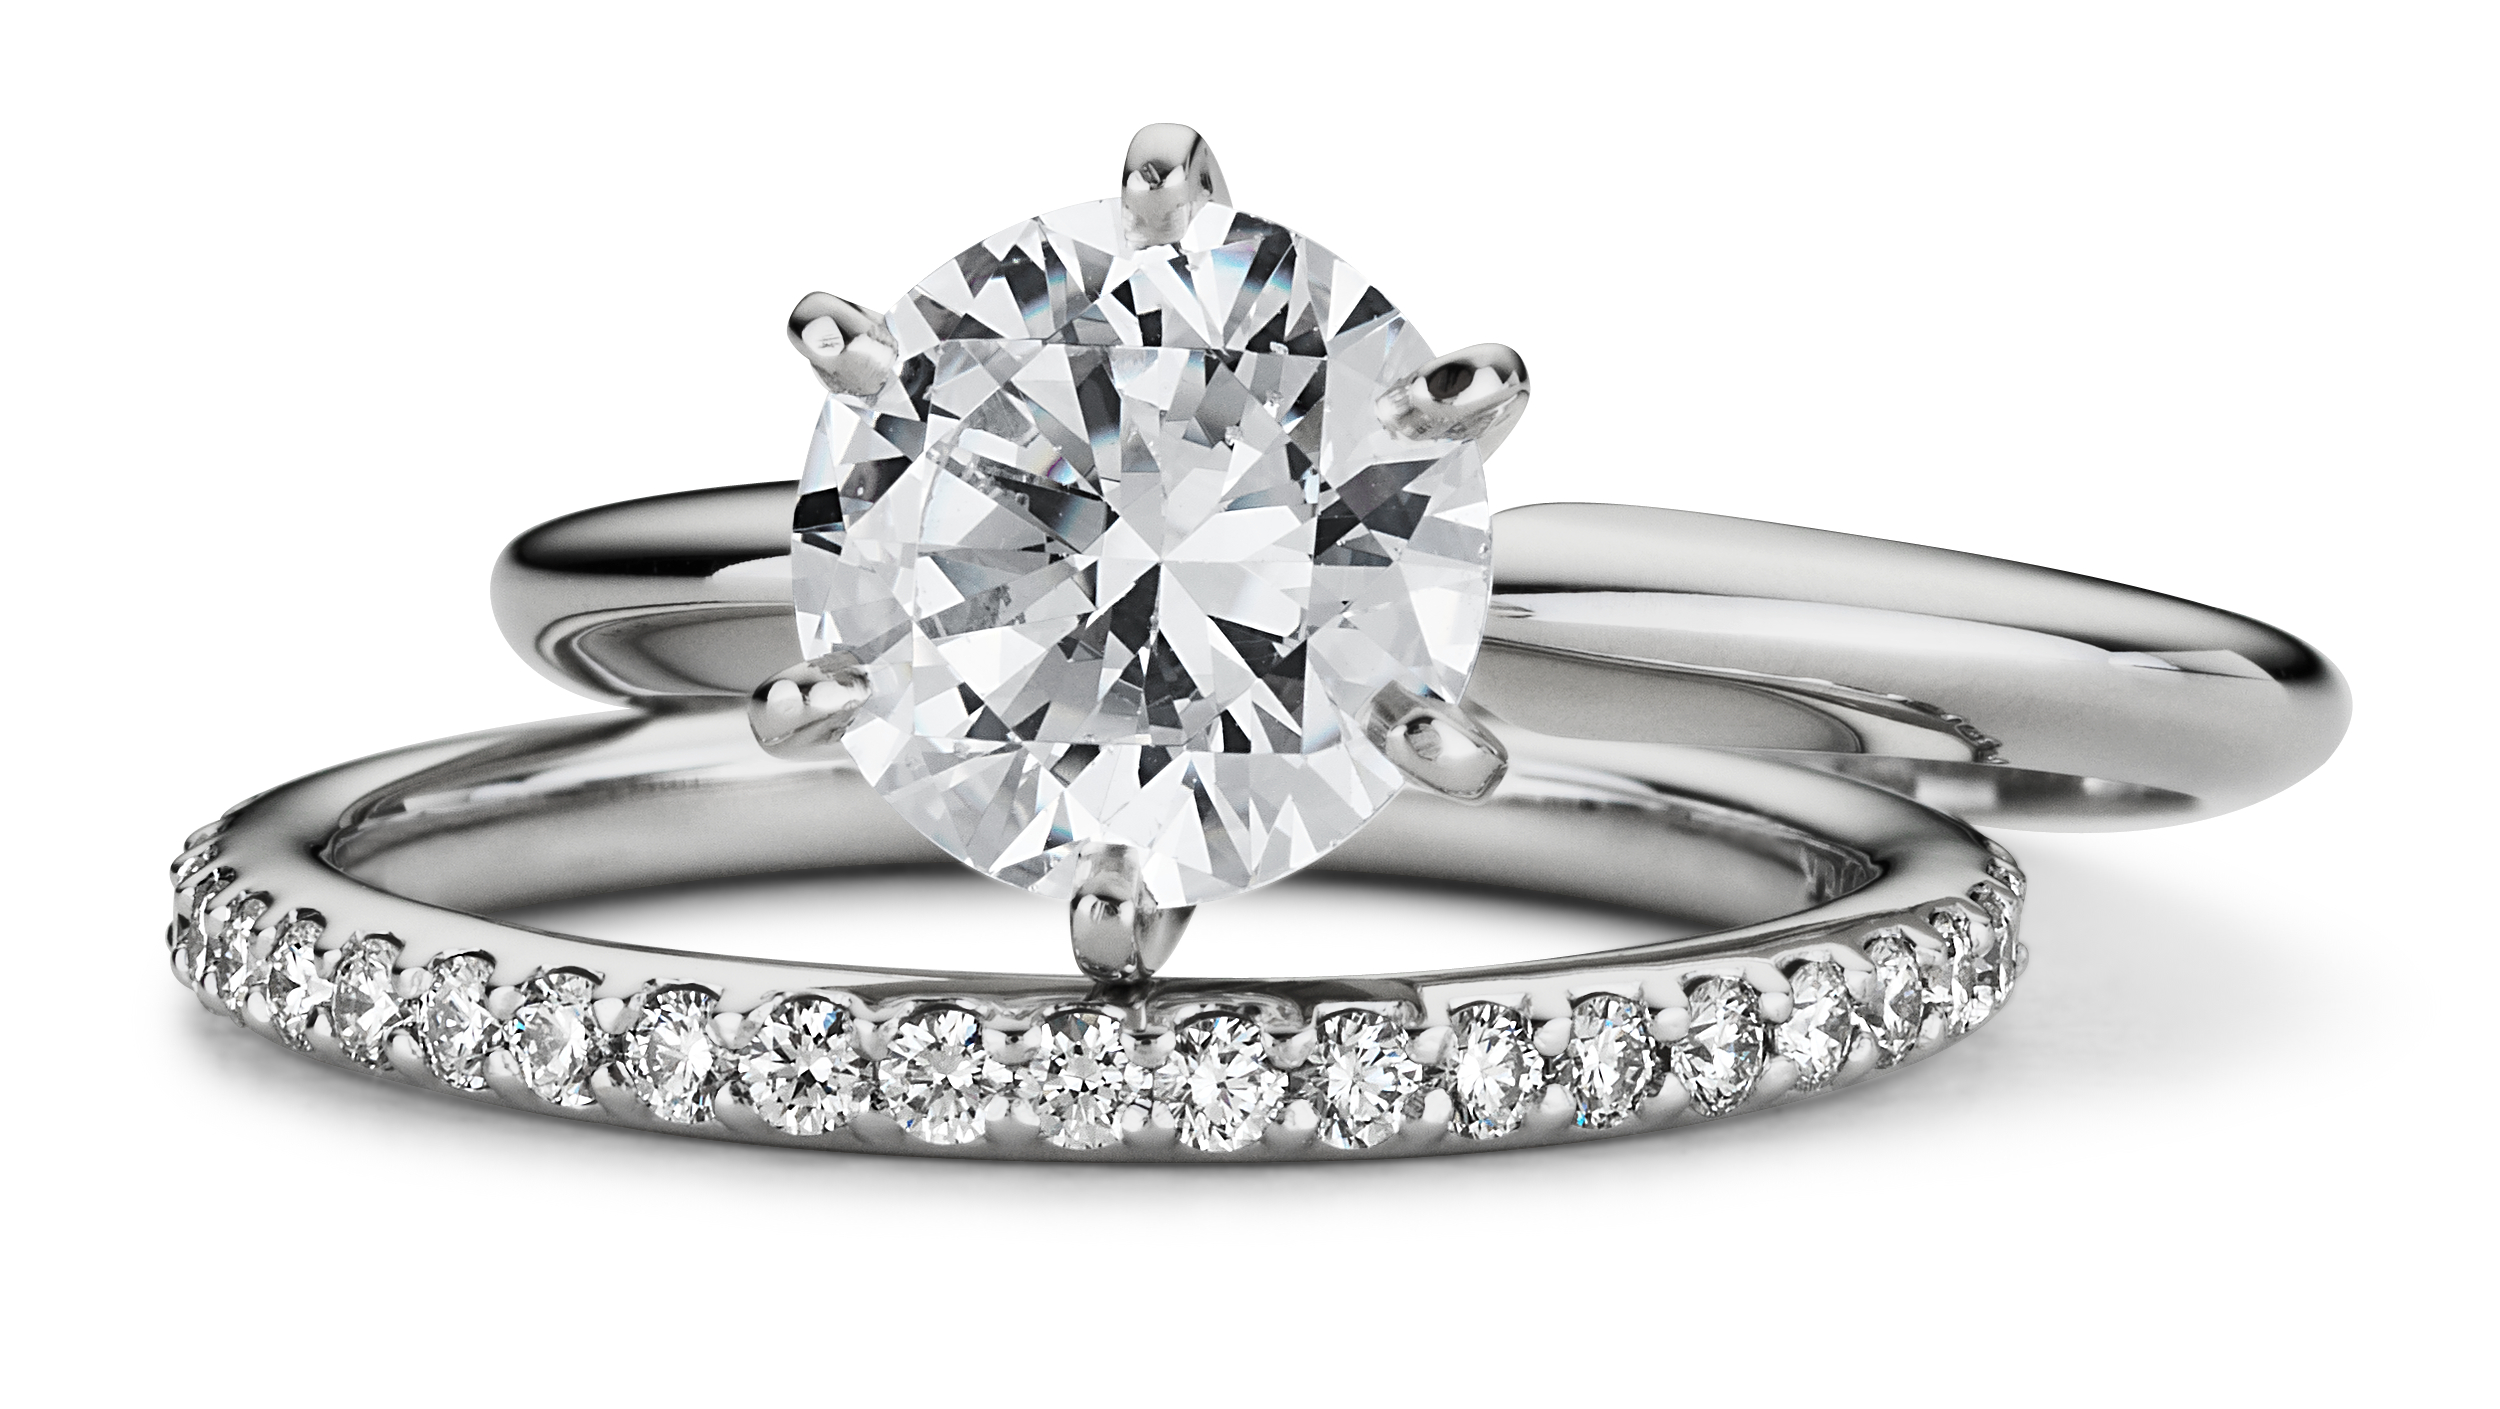 context large solitaire ring the beaverbrooks platinum jewellers jewellery diamond